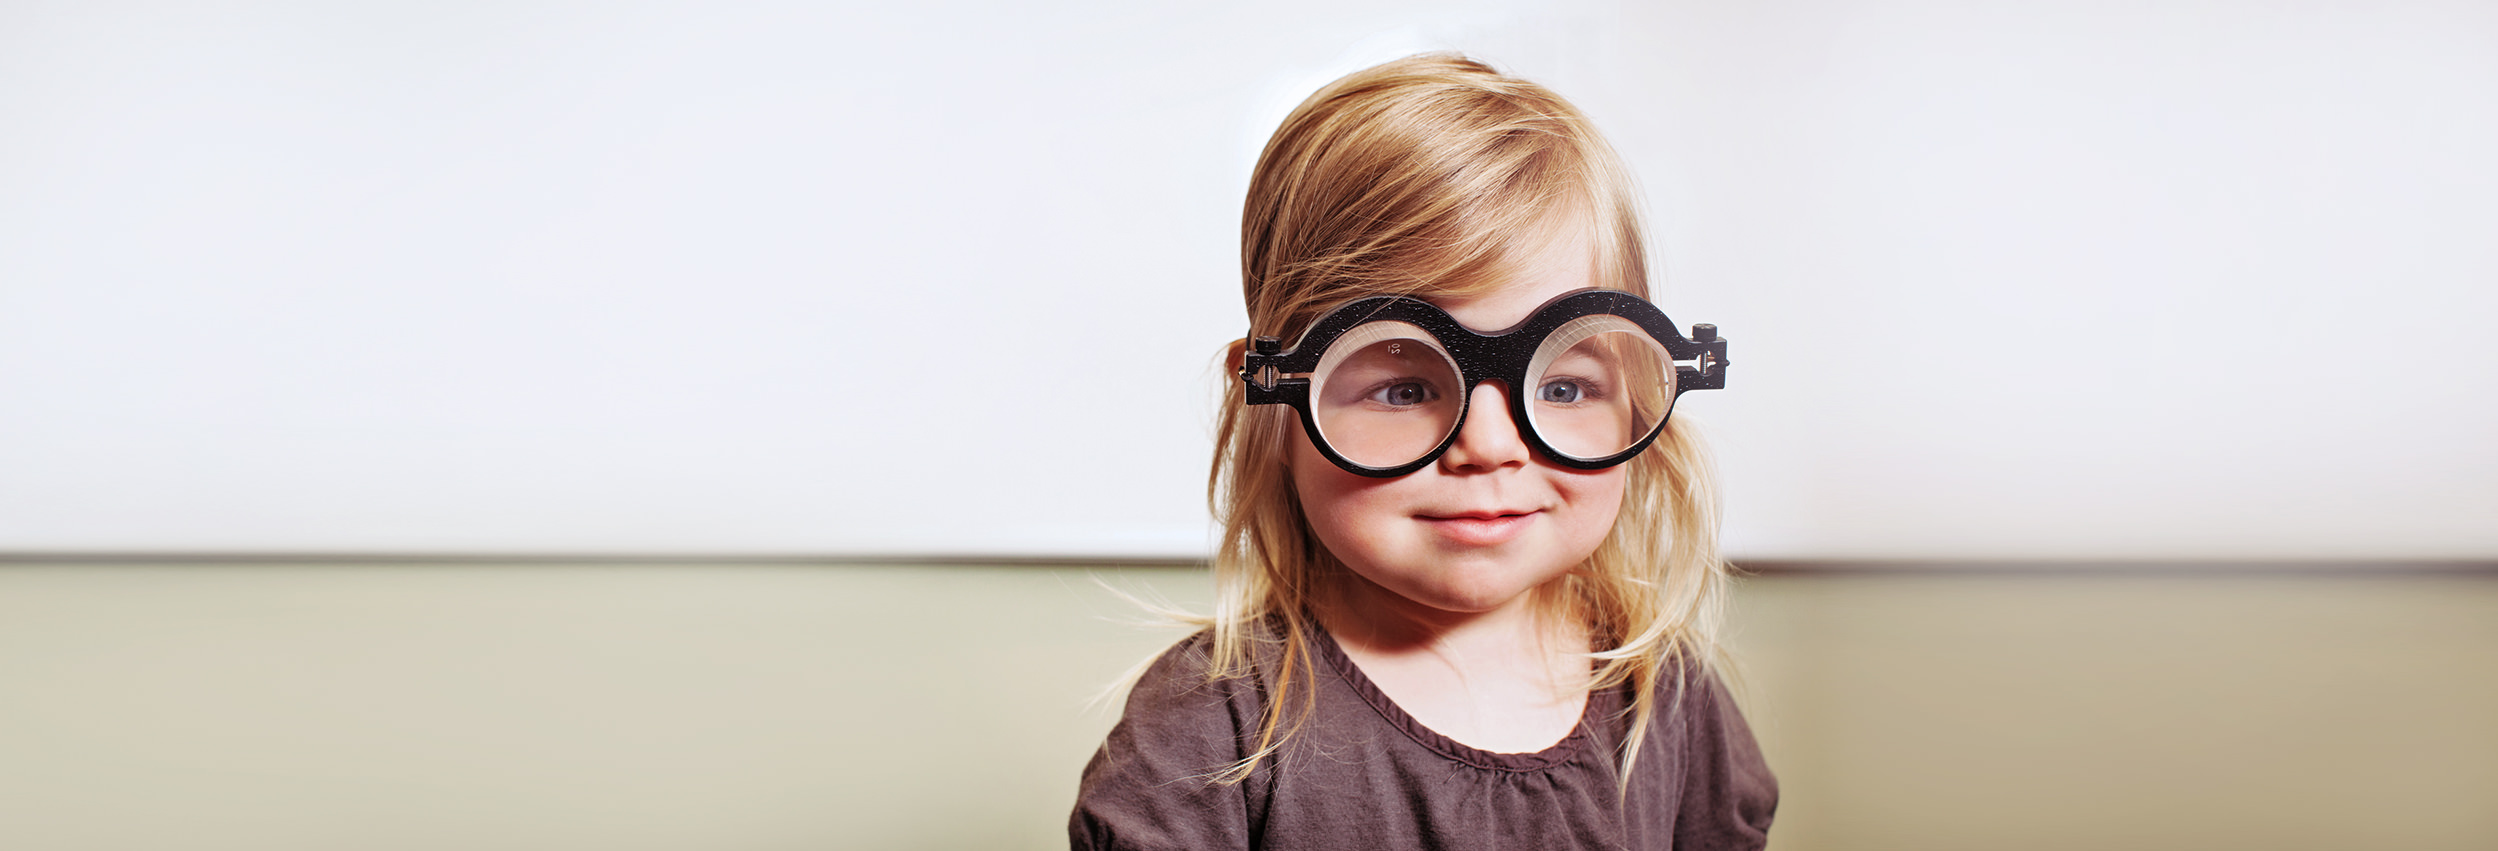 child-training-glasses